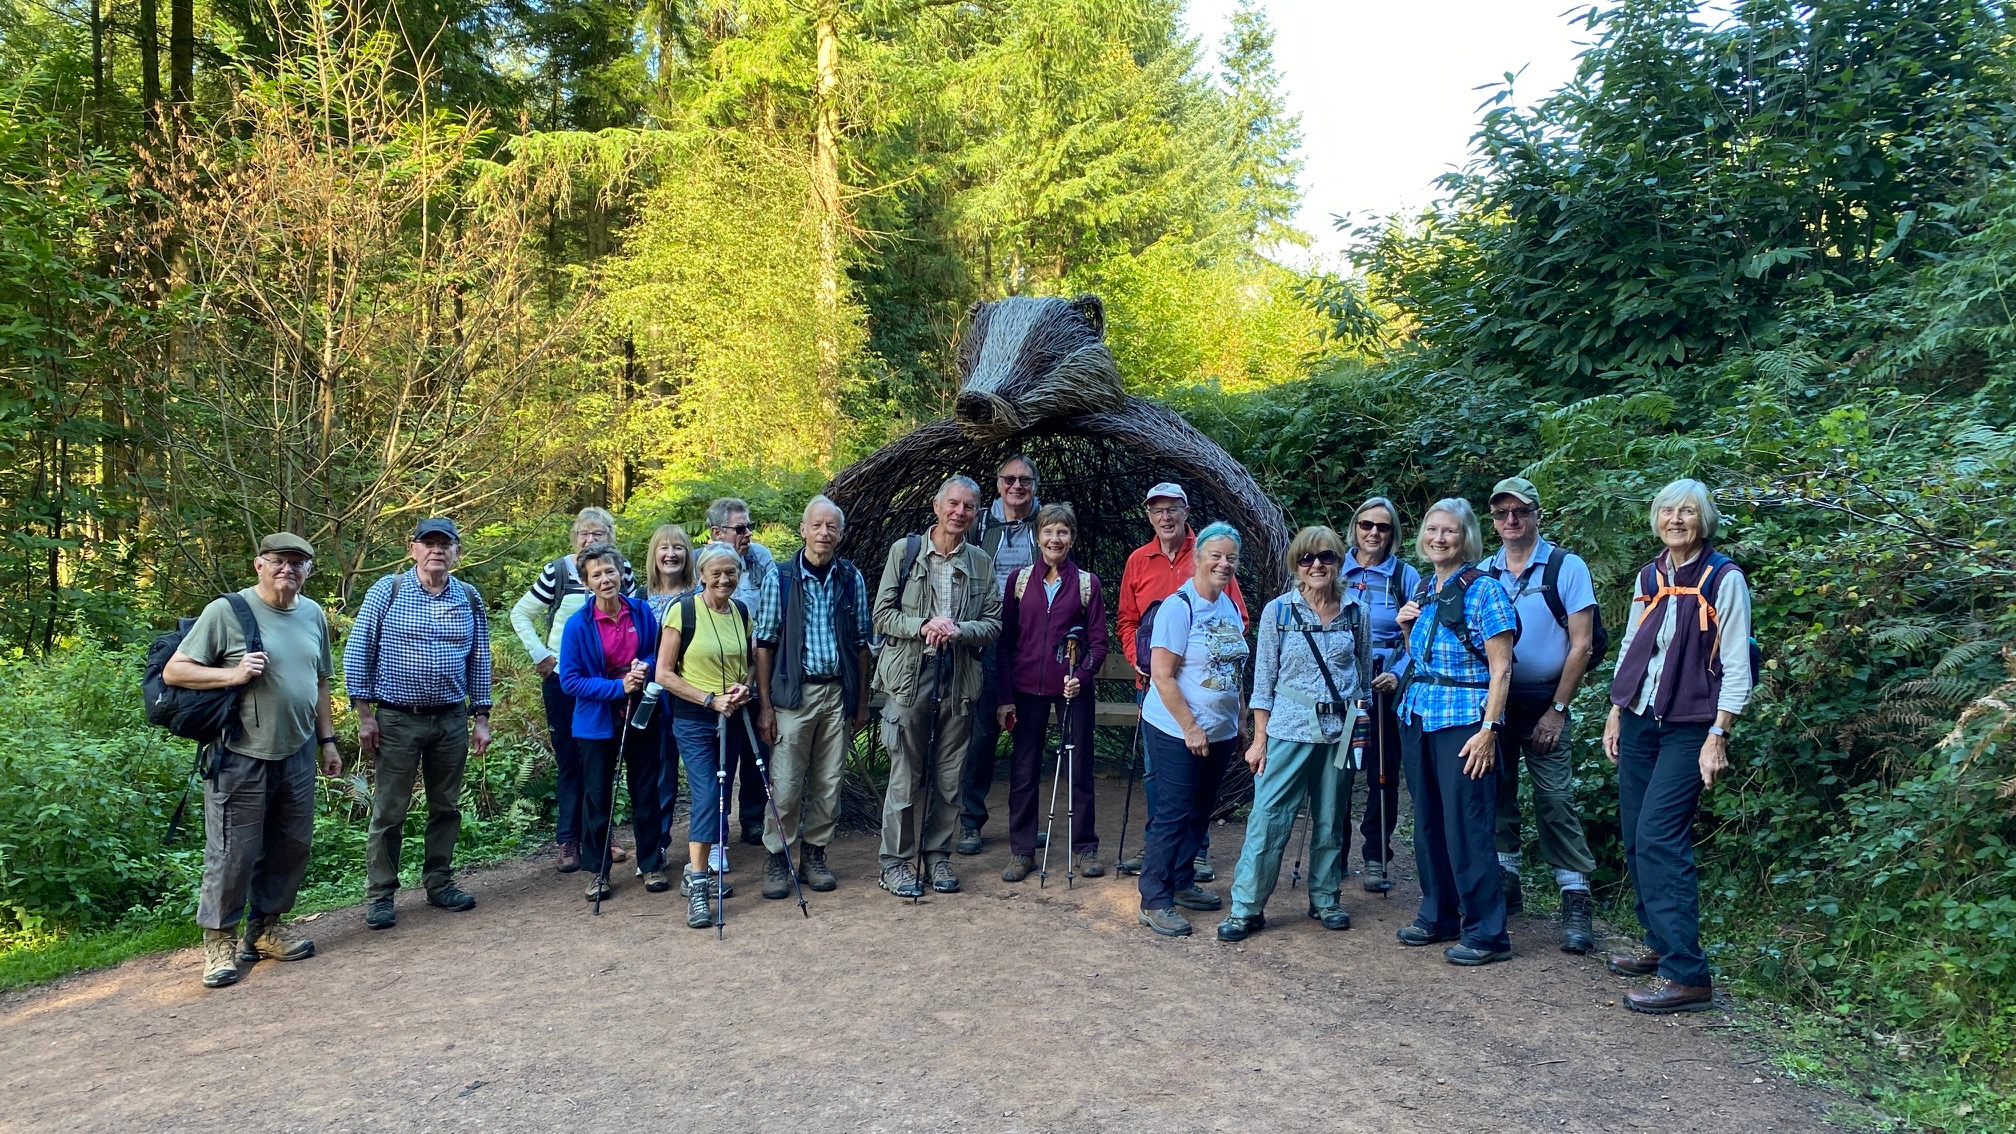 Forest of Dean Sculpture Trail 24th Sept